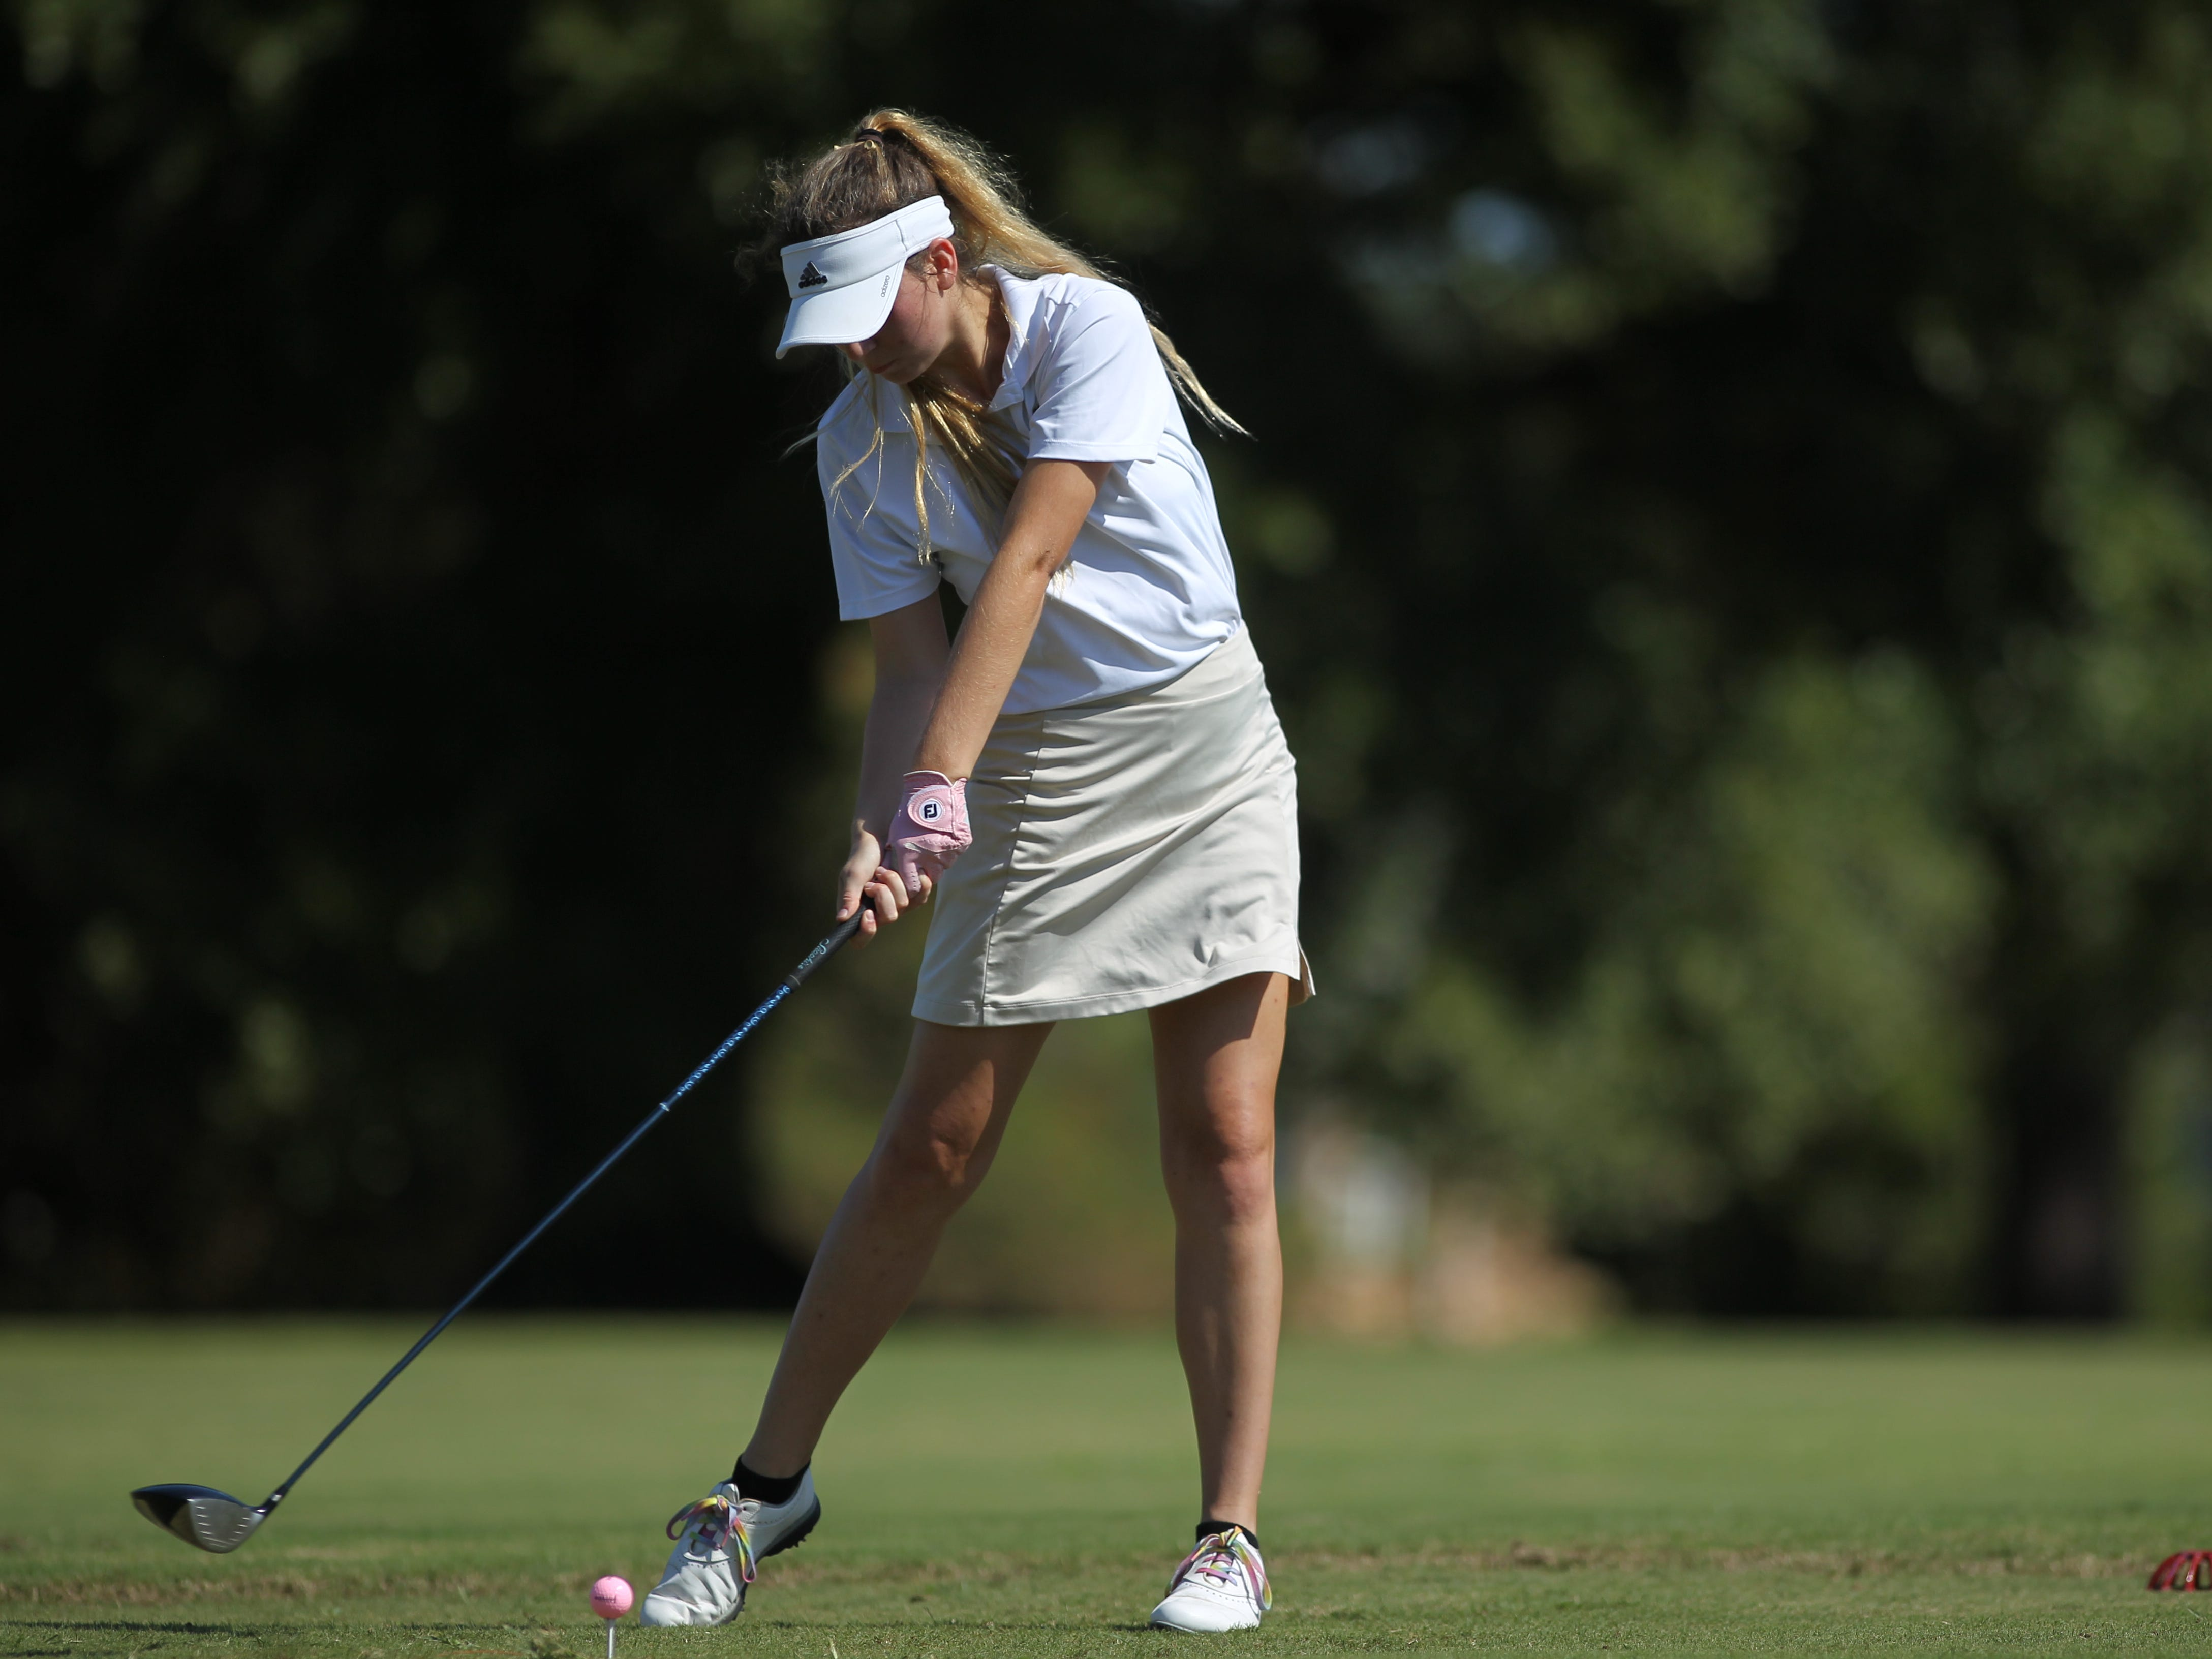 Lincoln's Elizabeth Smith tees off during the girls golf Panhandle Invitational at Killearn Country Club, Oct. 4, 2018.